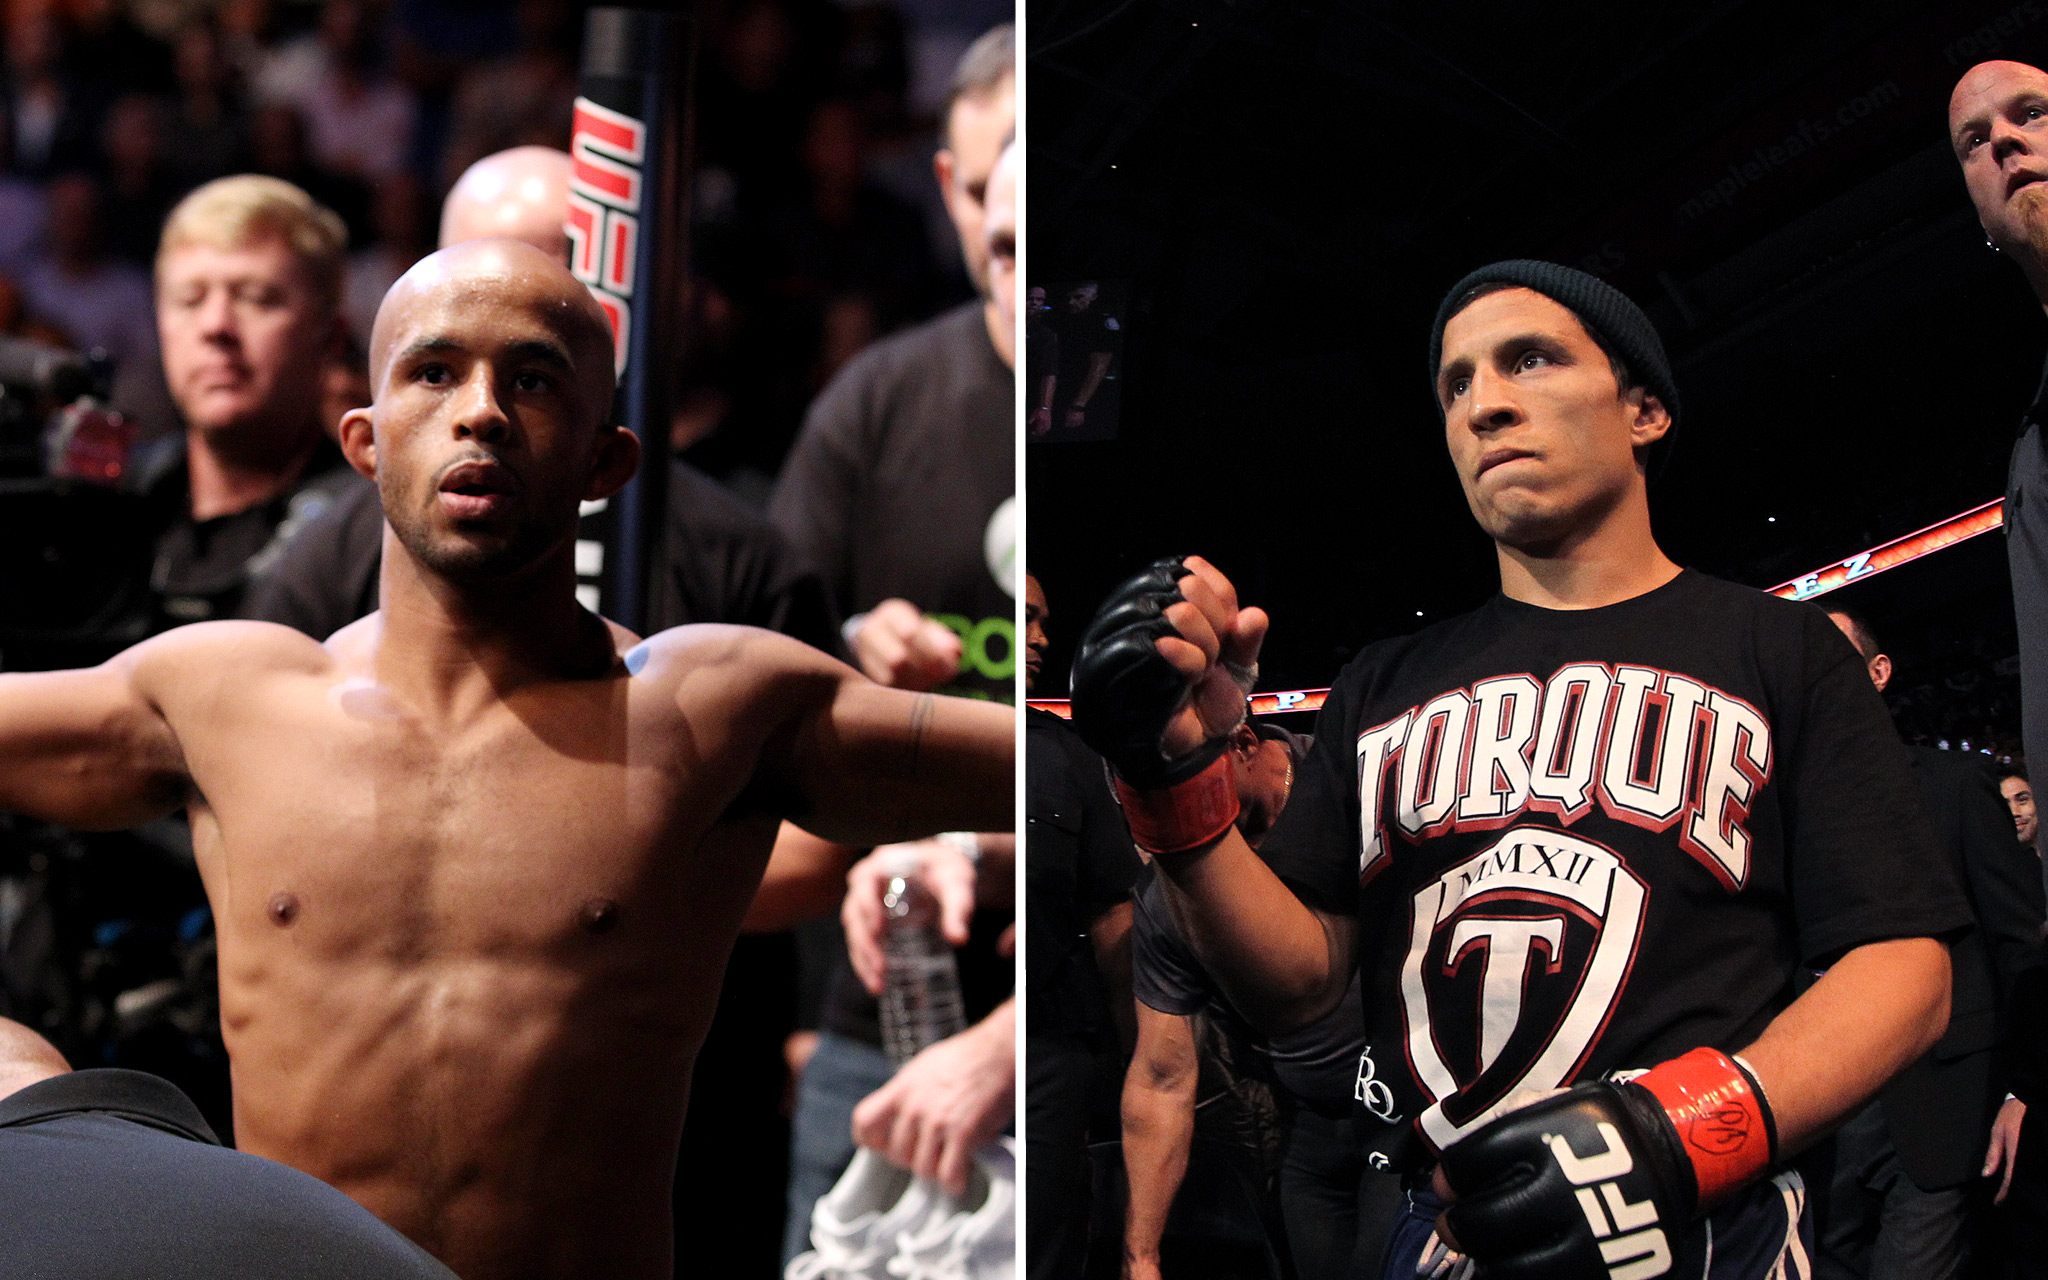 Joseph Benavidez vs. Demetrious Johnson